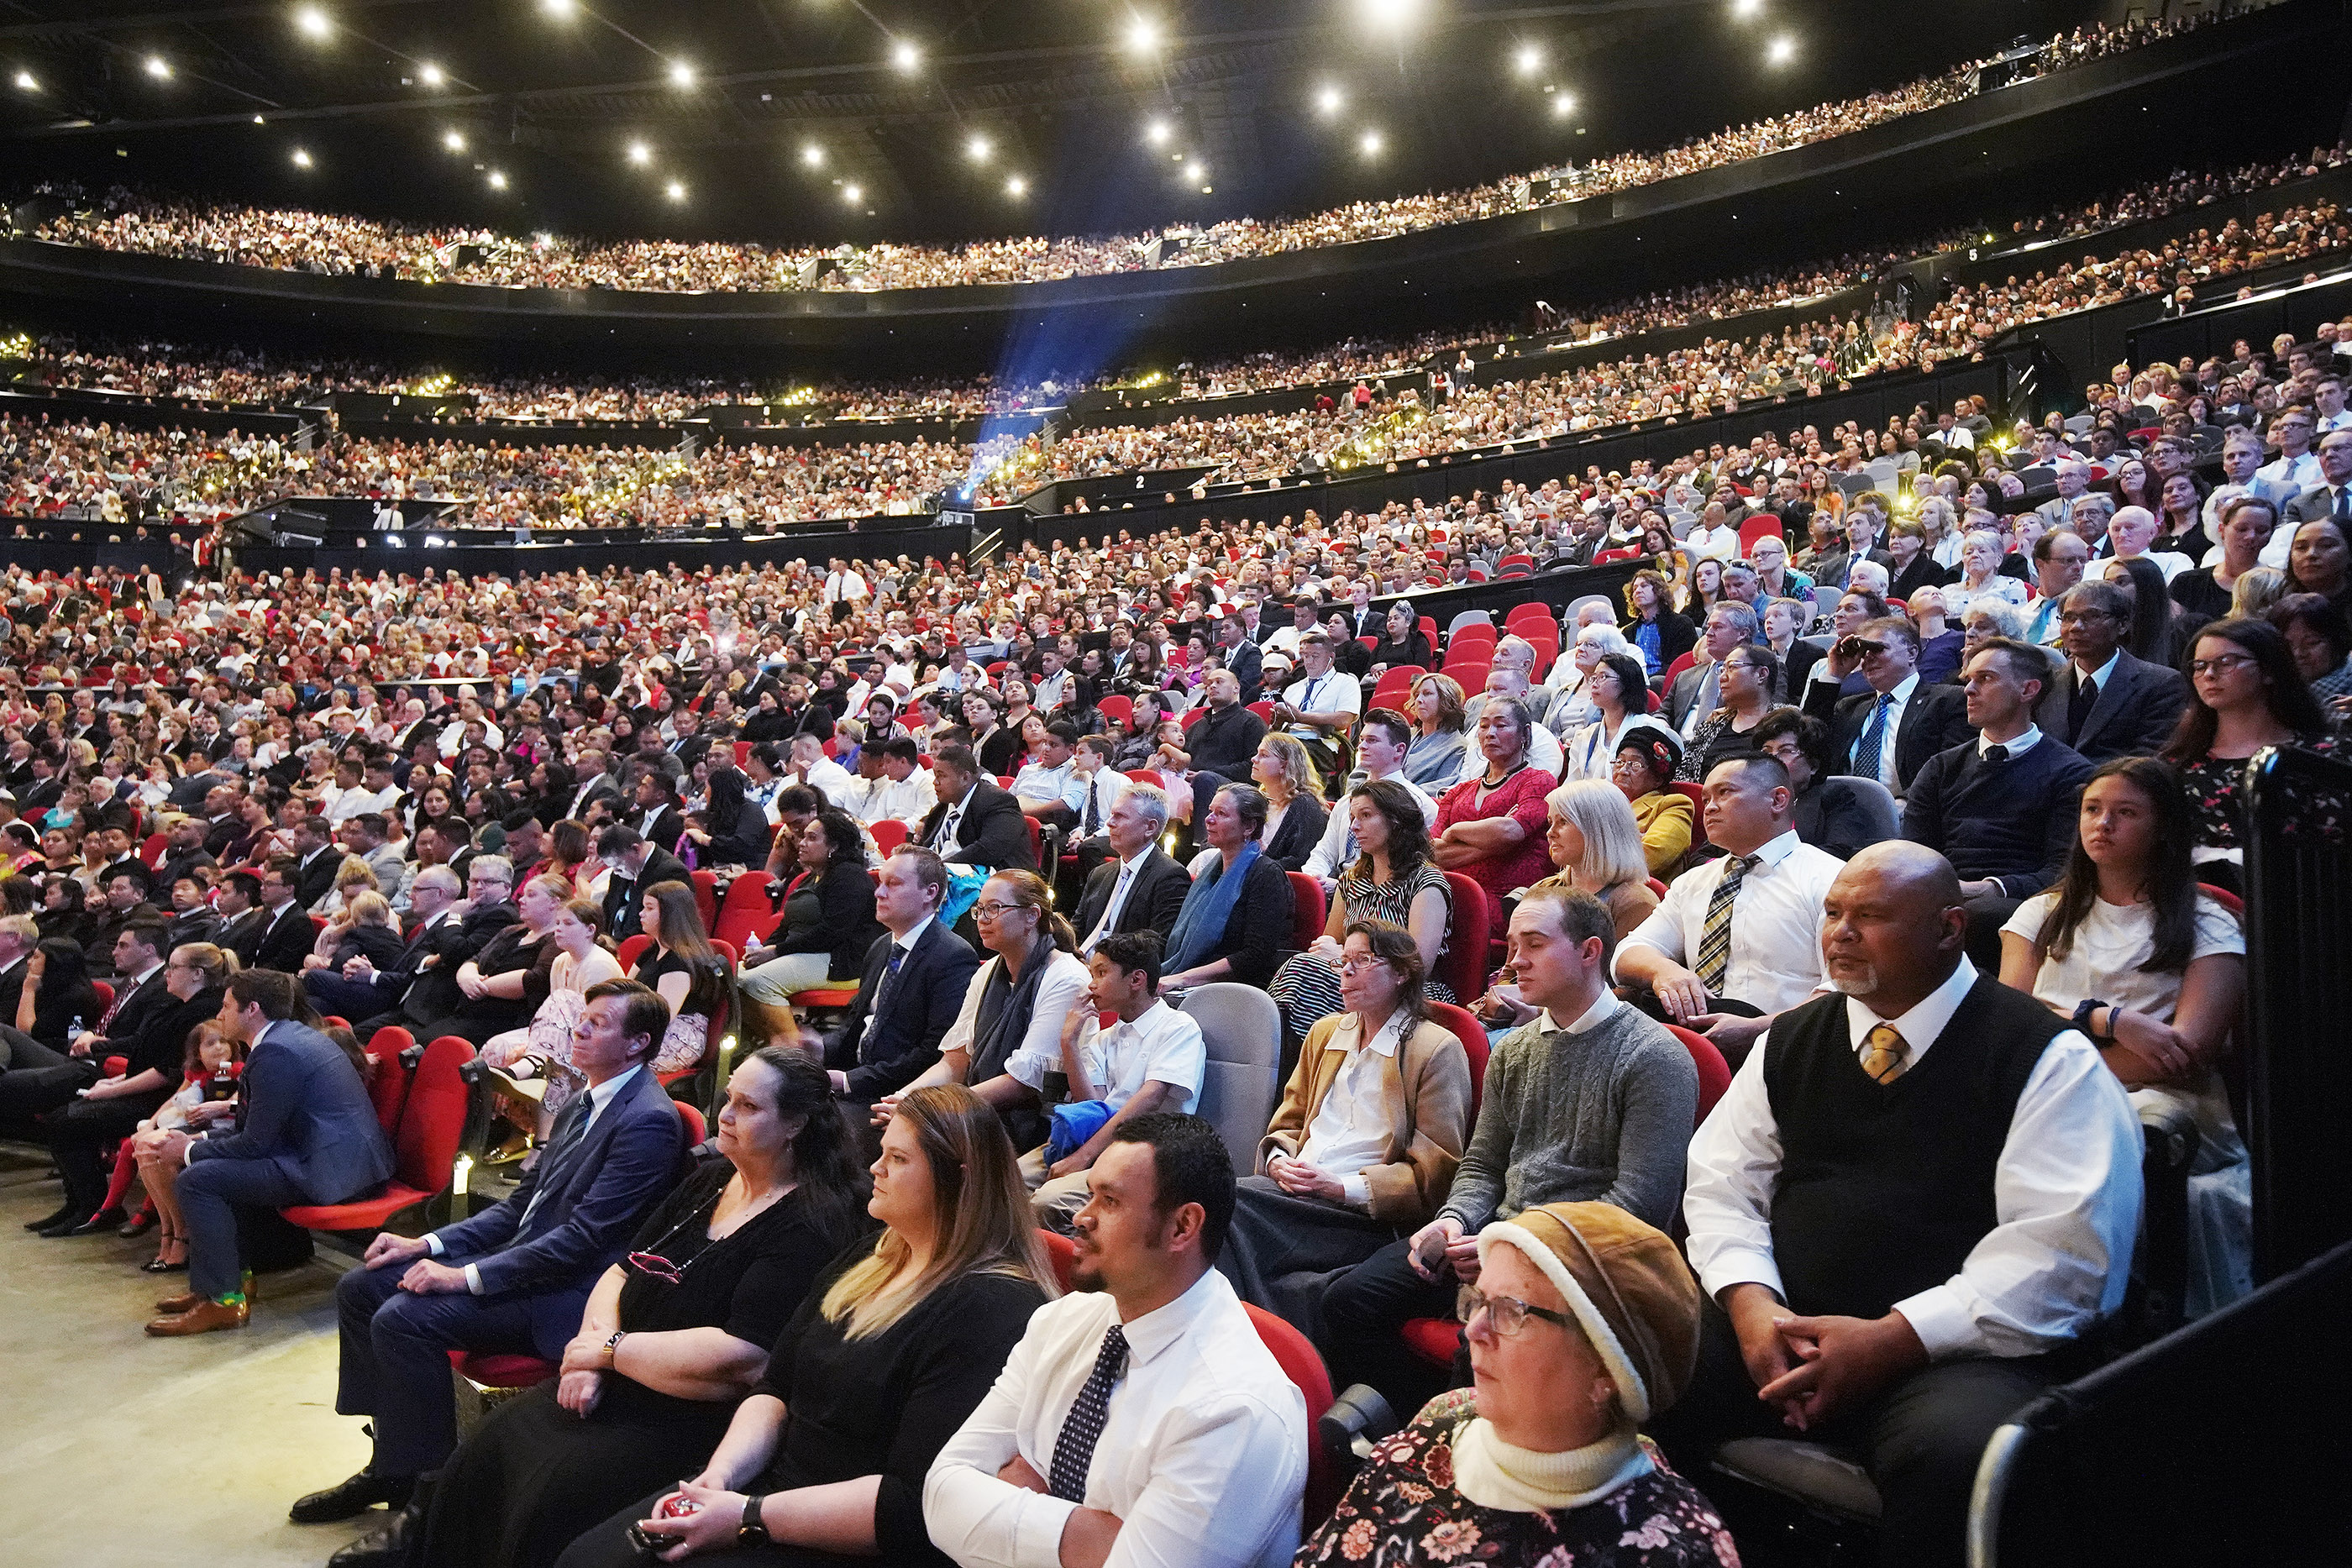 Attendees listen to President Russell M. Nelson of The Church of Jesus Christ of Latter-day Saints at the International Conference Center on May 19, 2019, in Sydney, Australia.